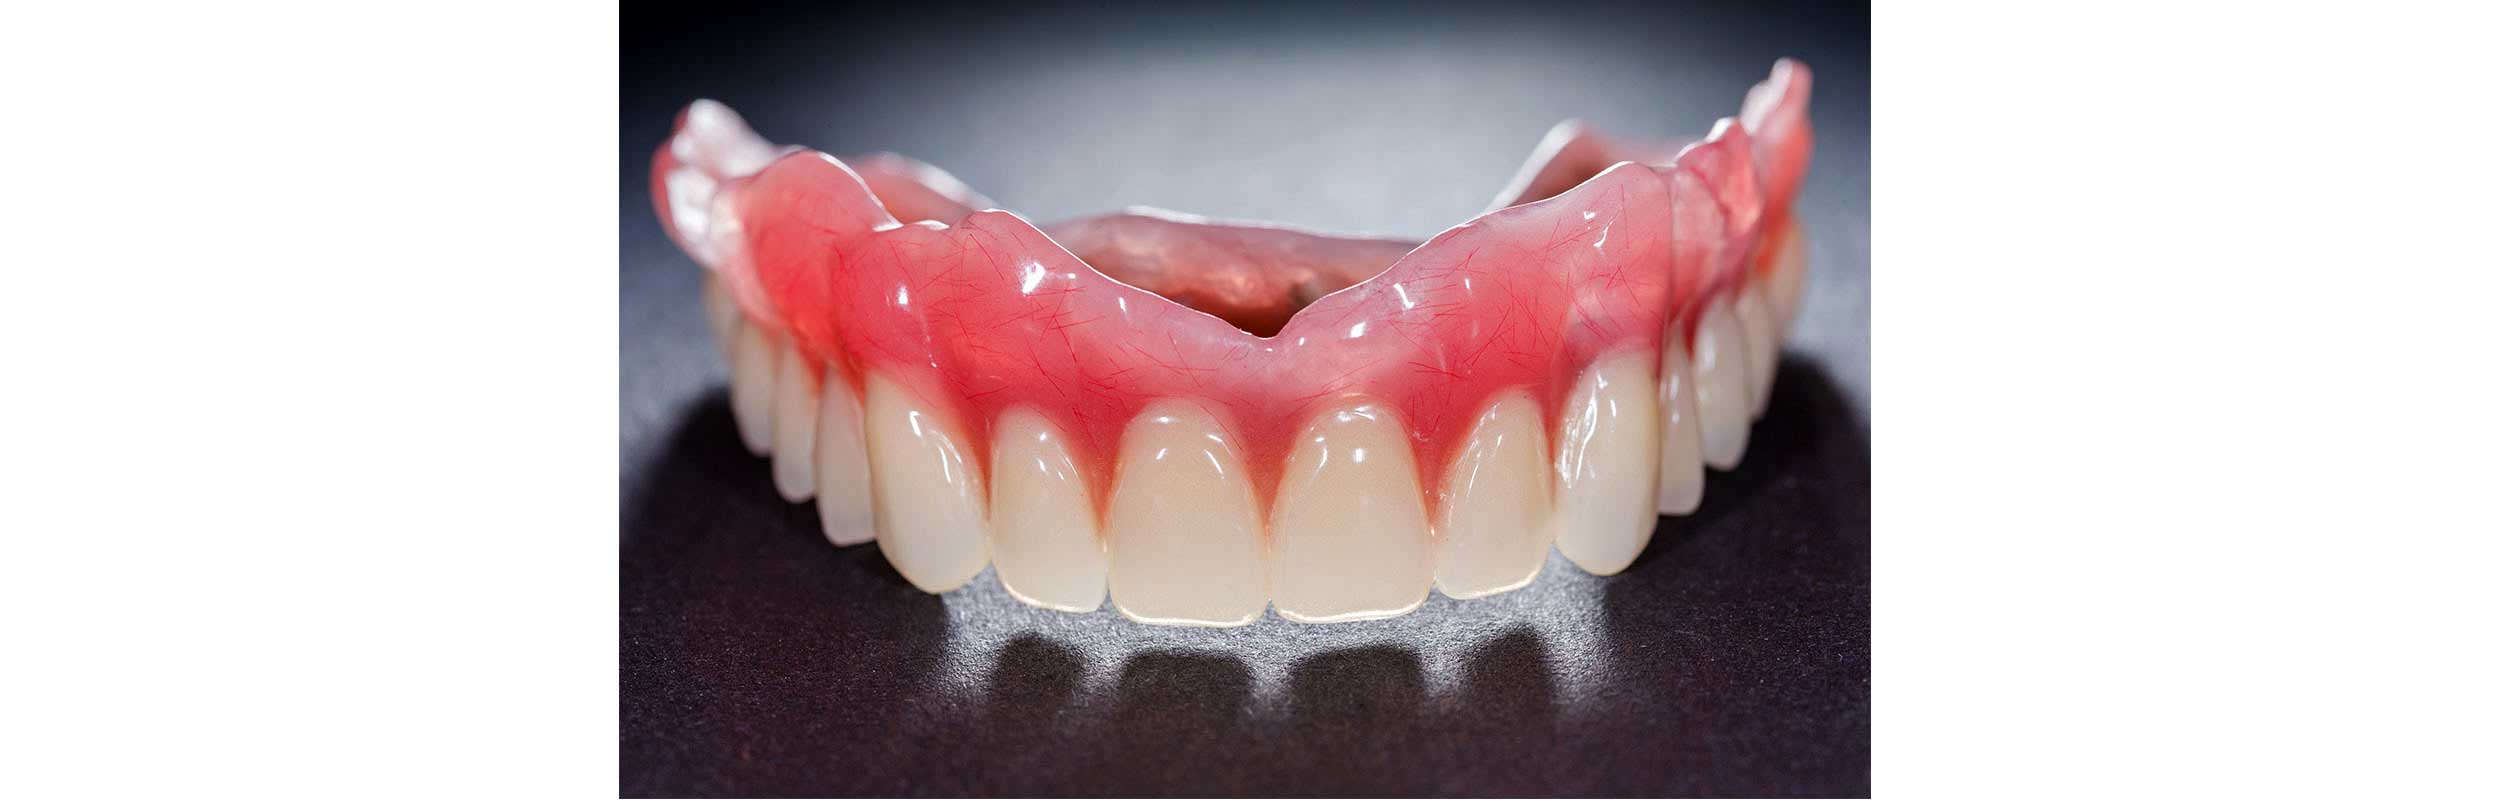 Complete Dentures in Nashville, TN